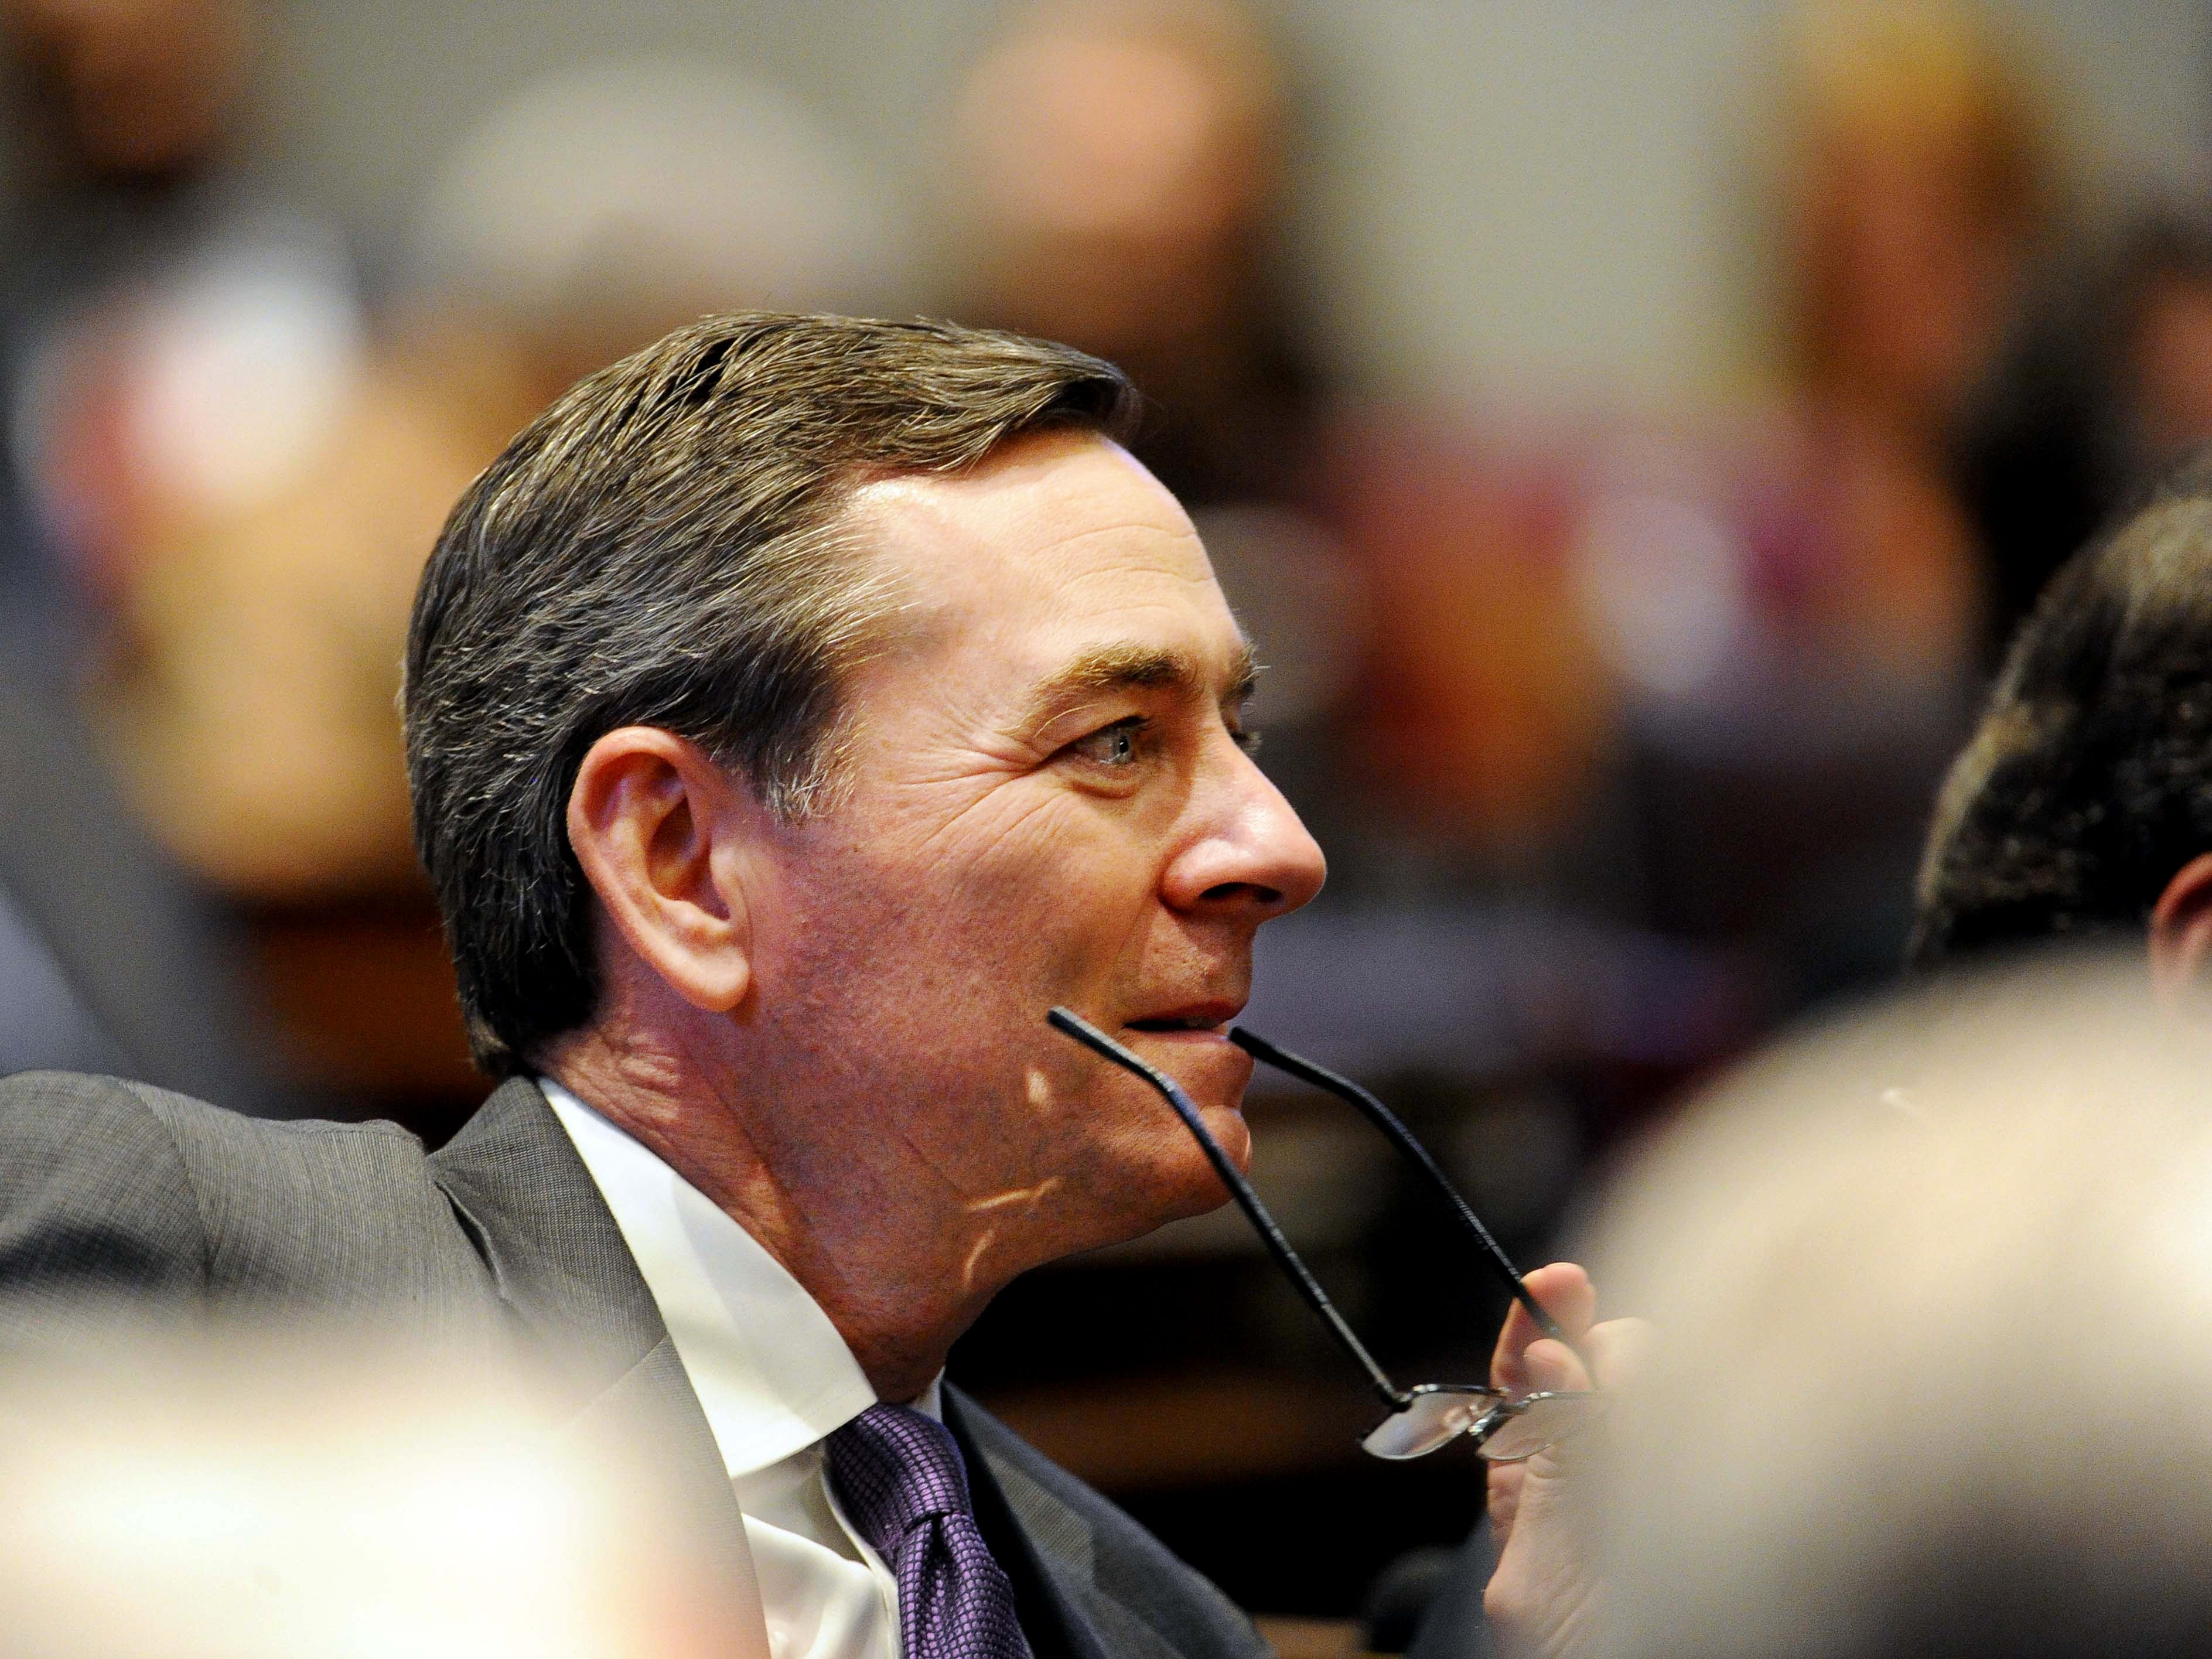 State Rep. Glen Casada listens as Gov. Bill Haslam delivers his annual State of the State address to the state legislature and the people of Tennessee at the state Capitol on Jan. 28, 2013.